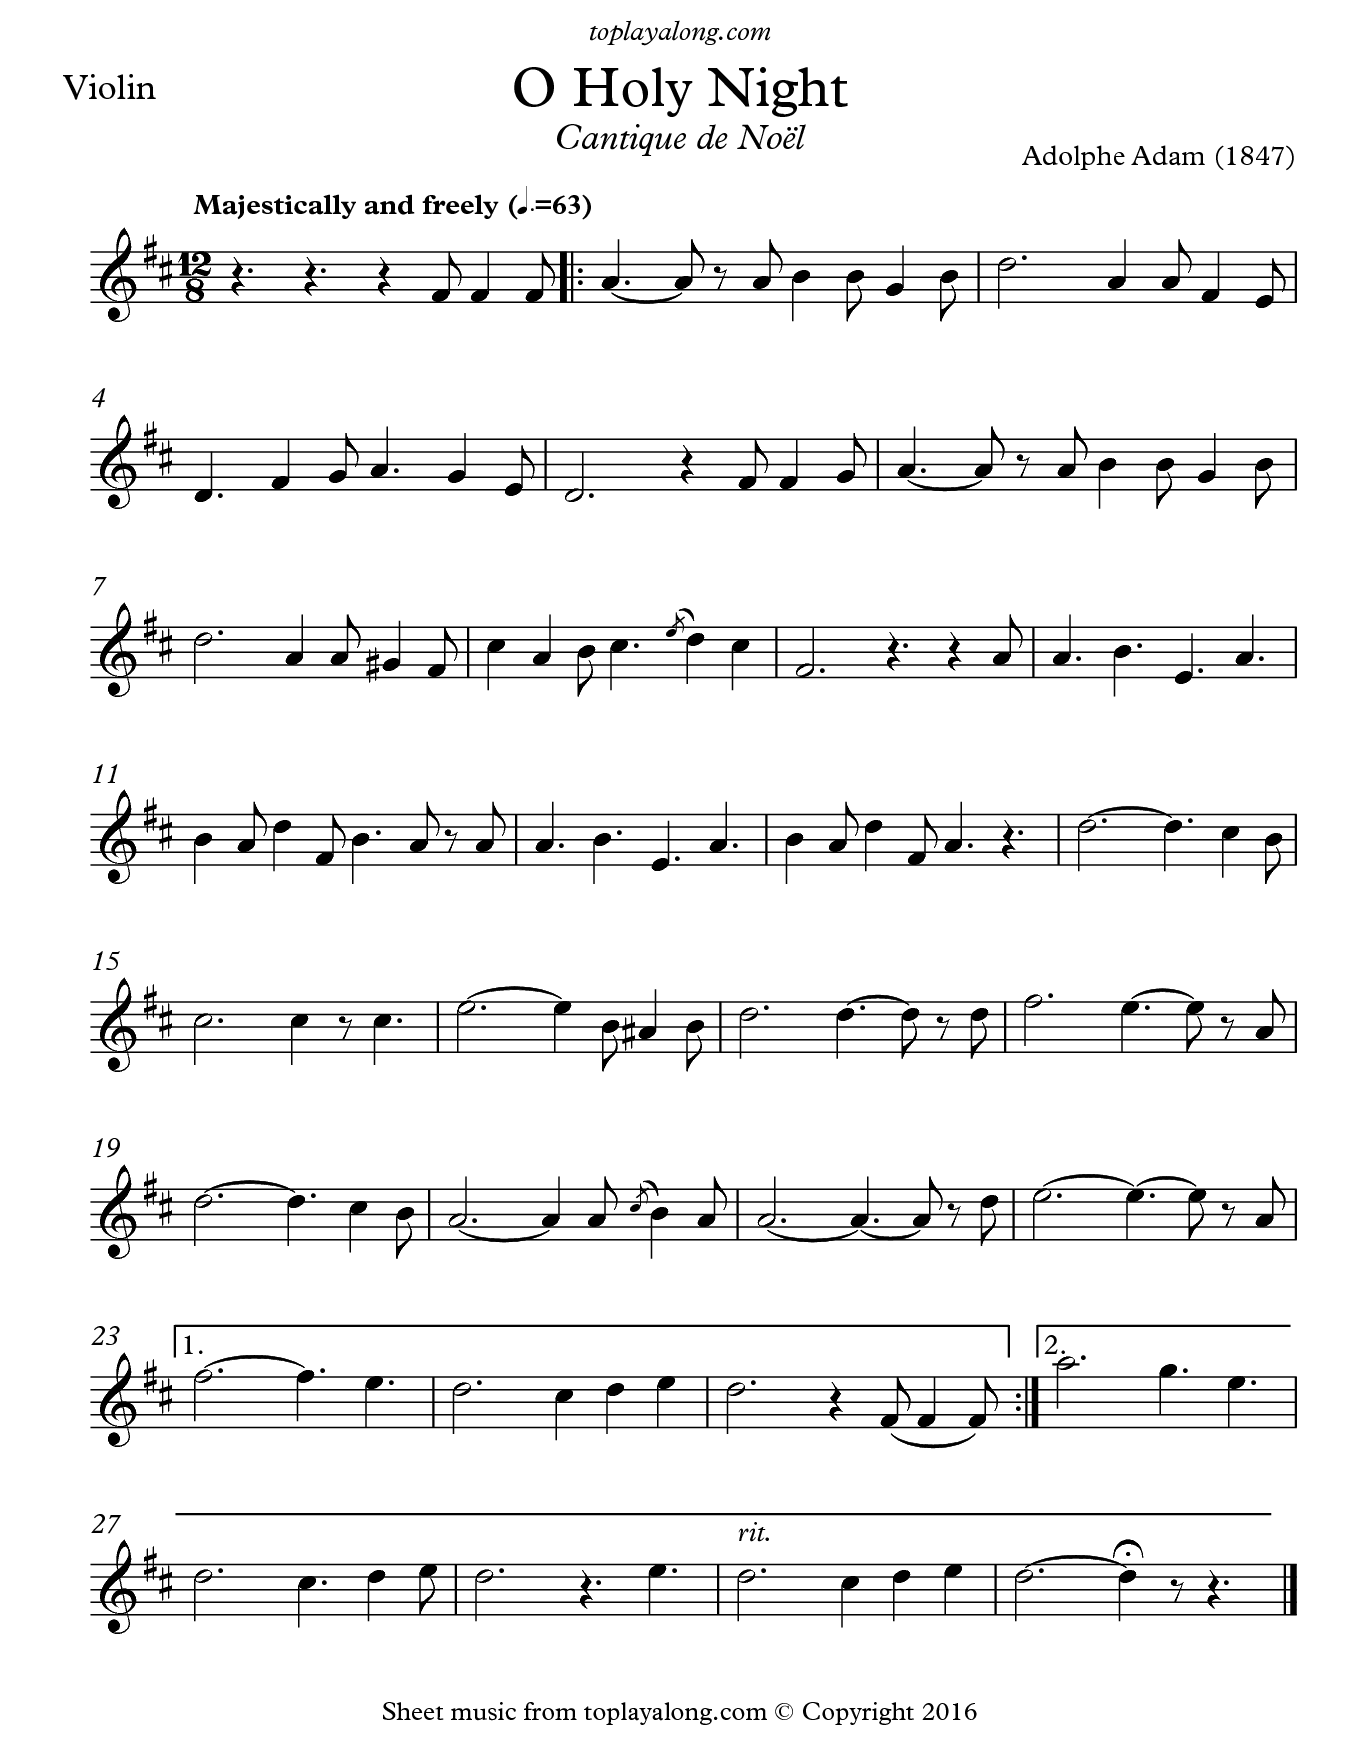 O Holy Night (Cantique de Noel) by Adolphe Adam. Sheet music for Violin, page 1.